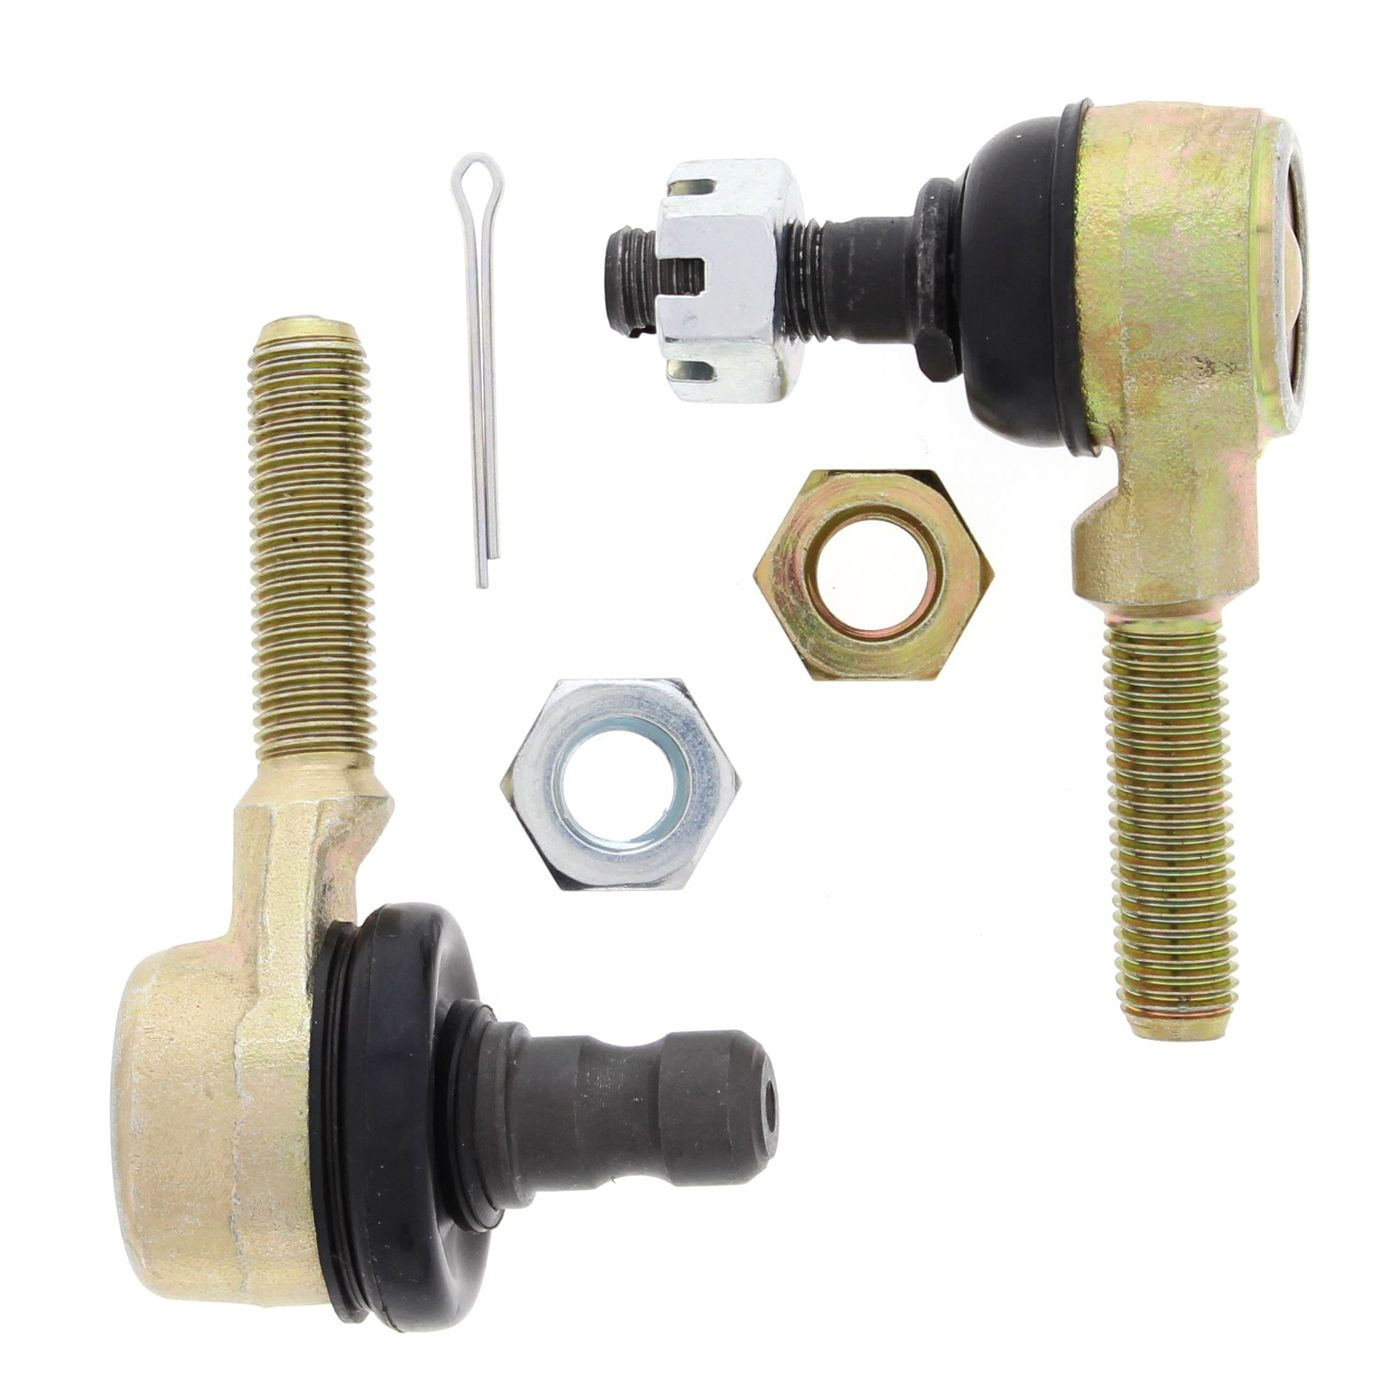 Wrp Tie Rod Ends - WRP511015 image